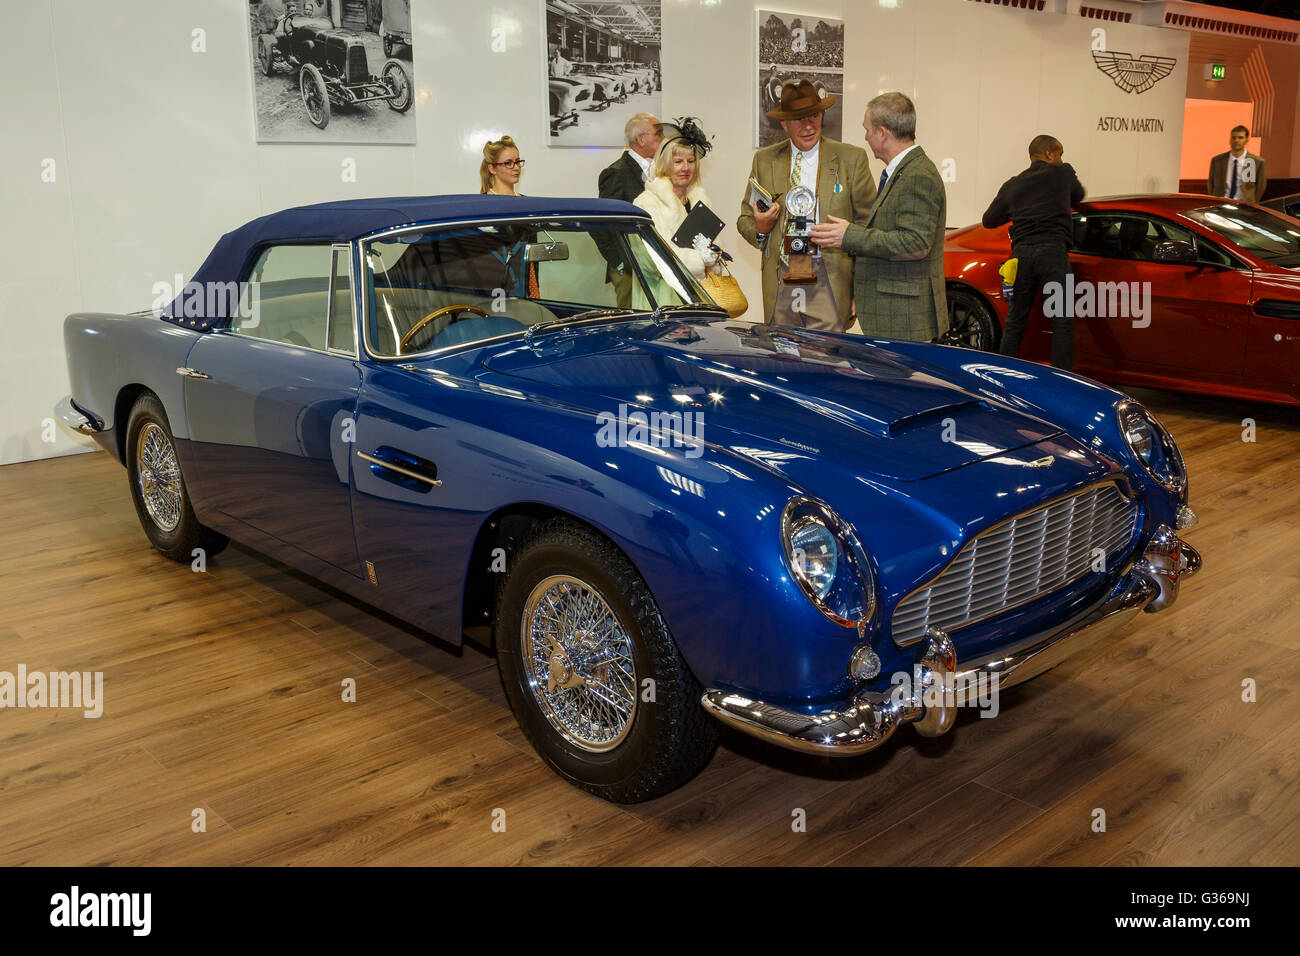 The eye-catching blue Aston Martin DB5 Convertible on display at the Motor Show, 2015 Goodwood Revival, Sussex, - Stock Image